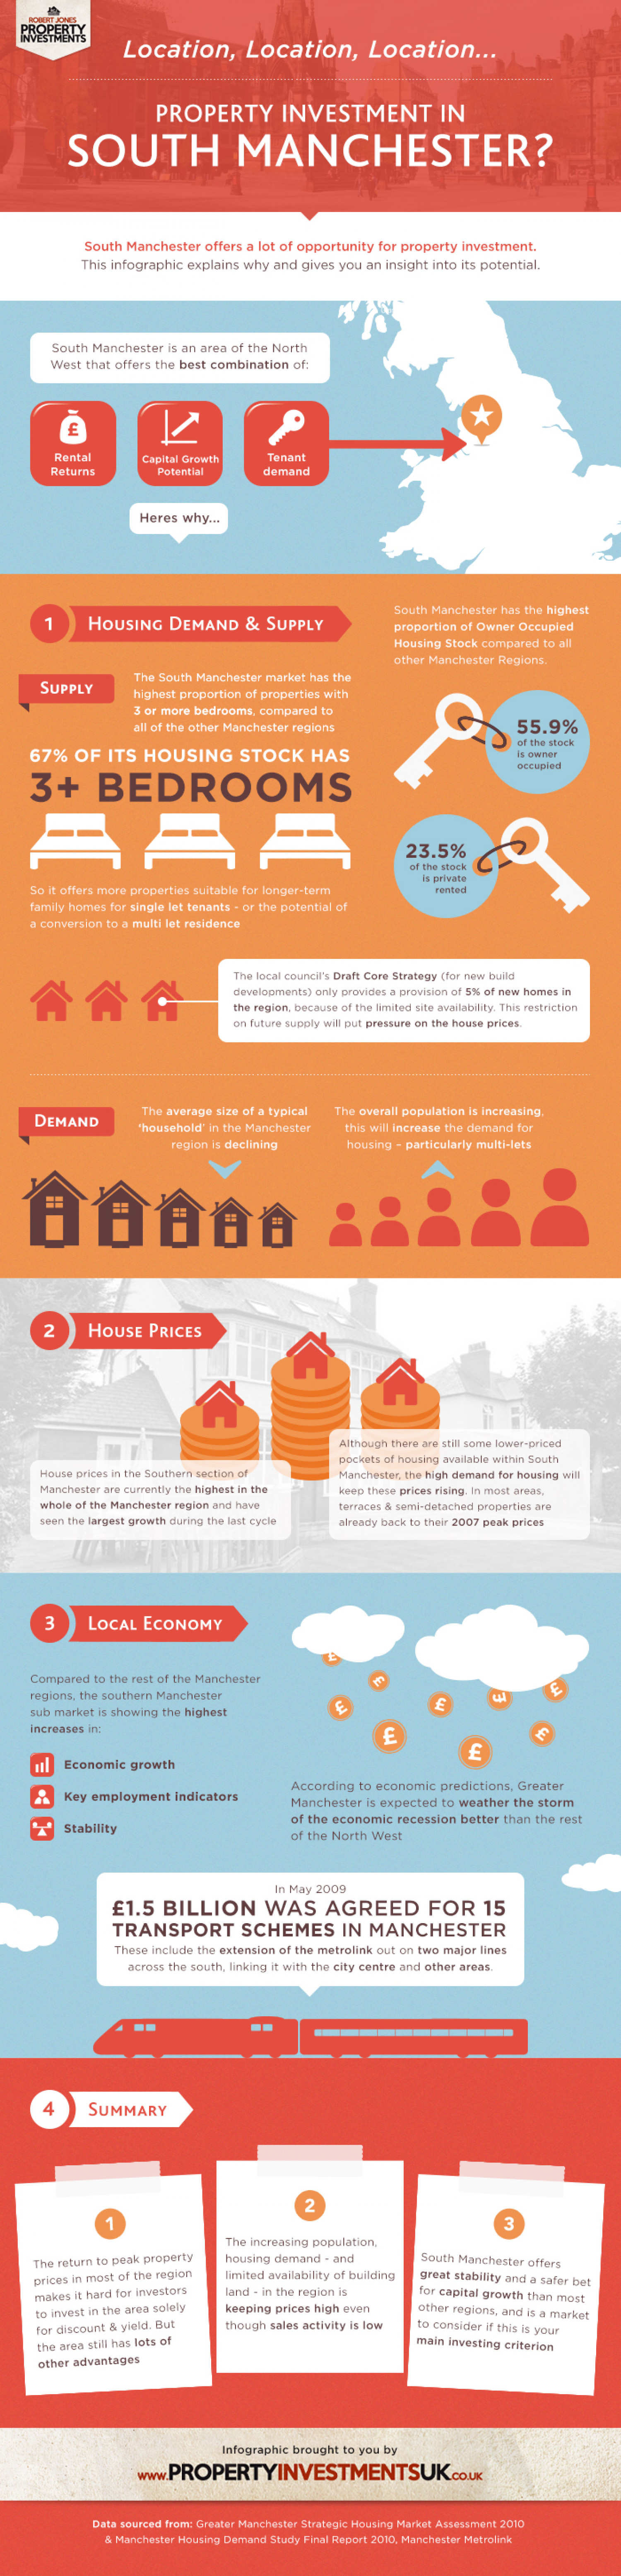 Property Investment in Manchester Infographic